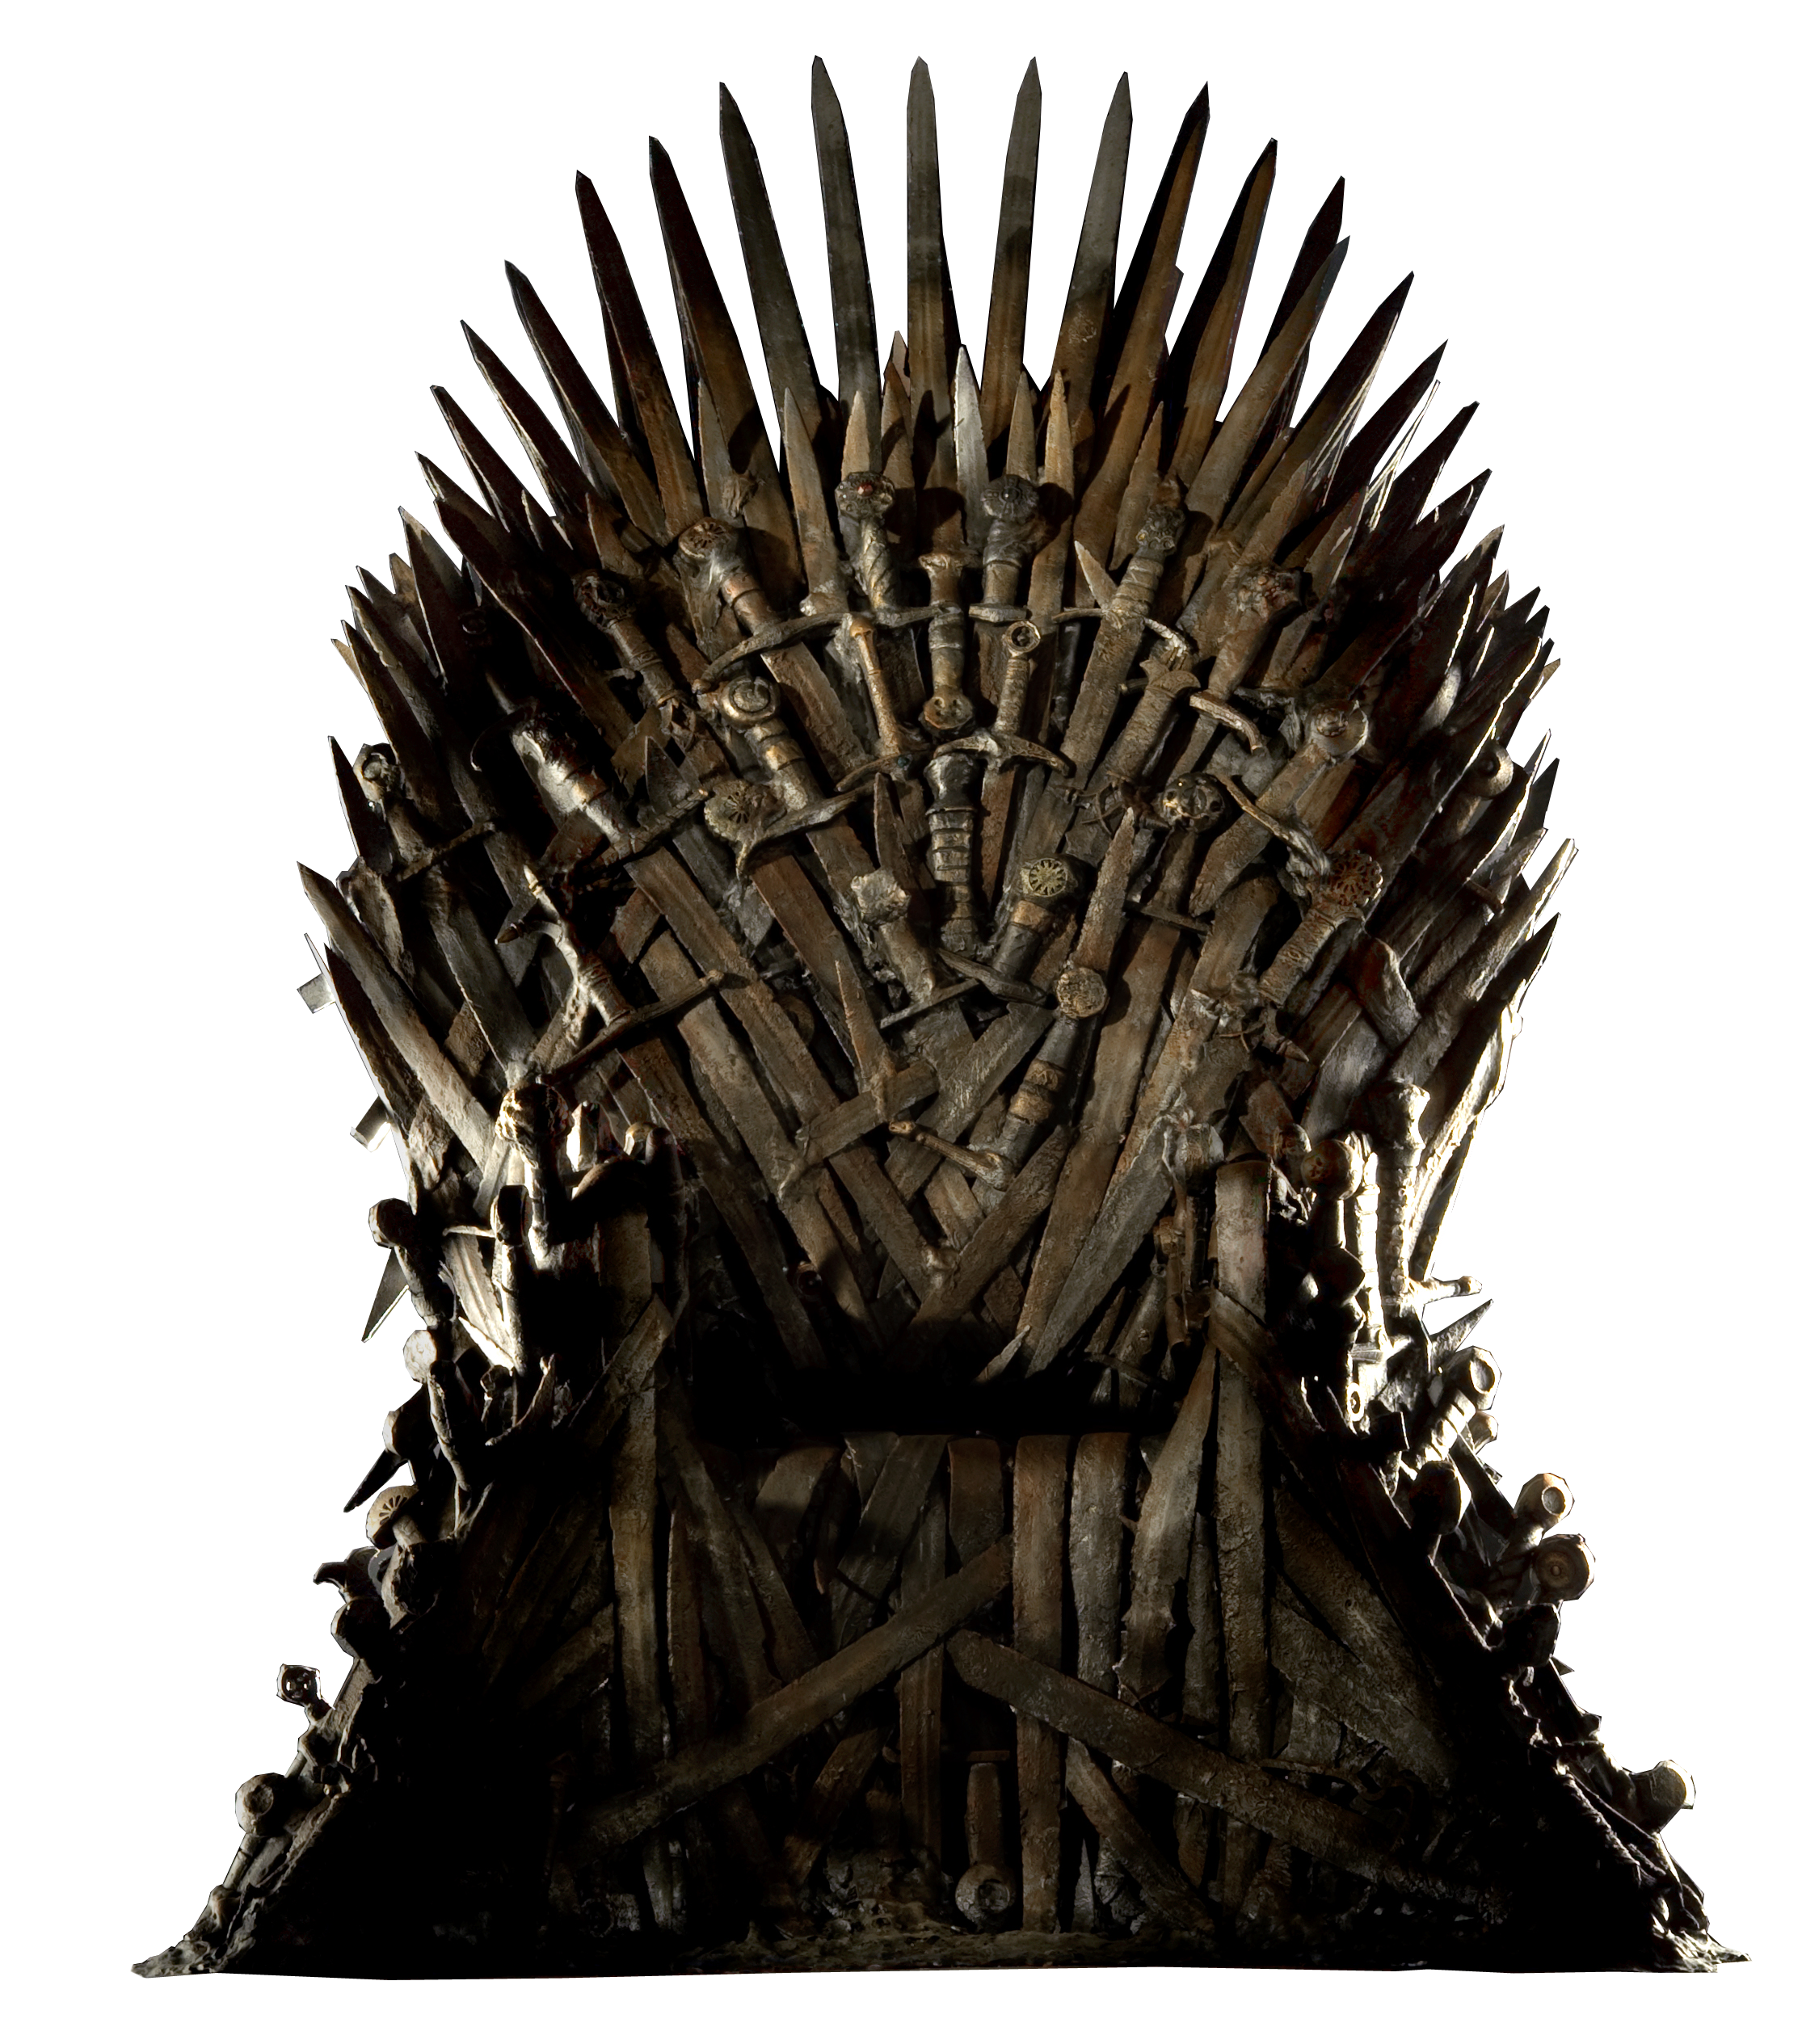 Game Of Thrones Throne Wallpaper: Game Of Thrones In 2019